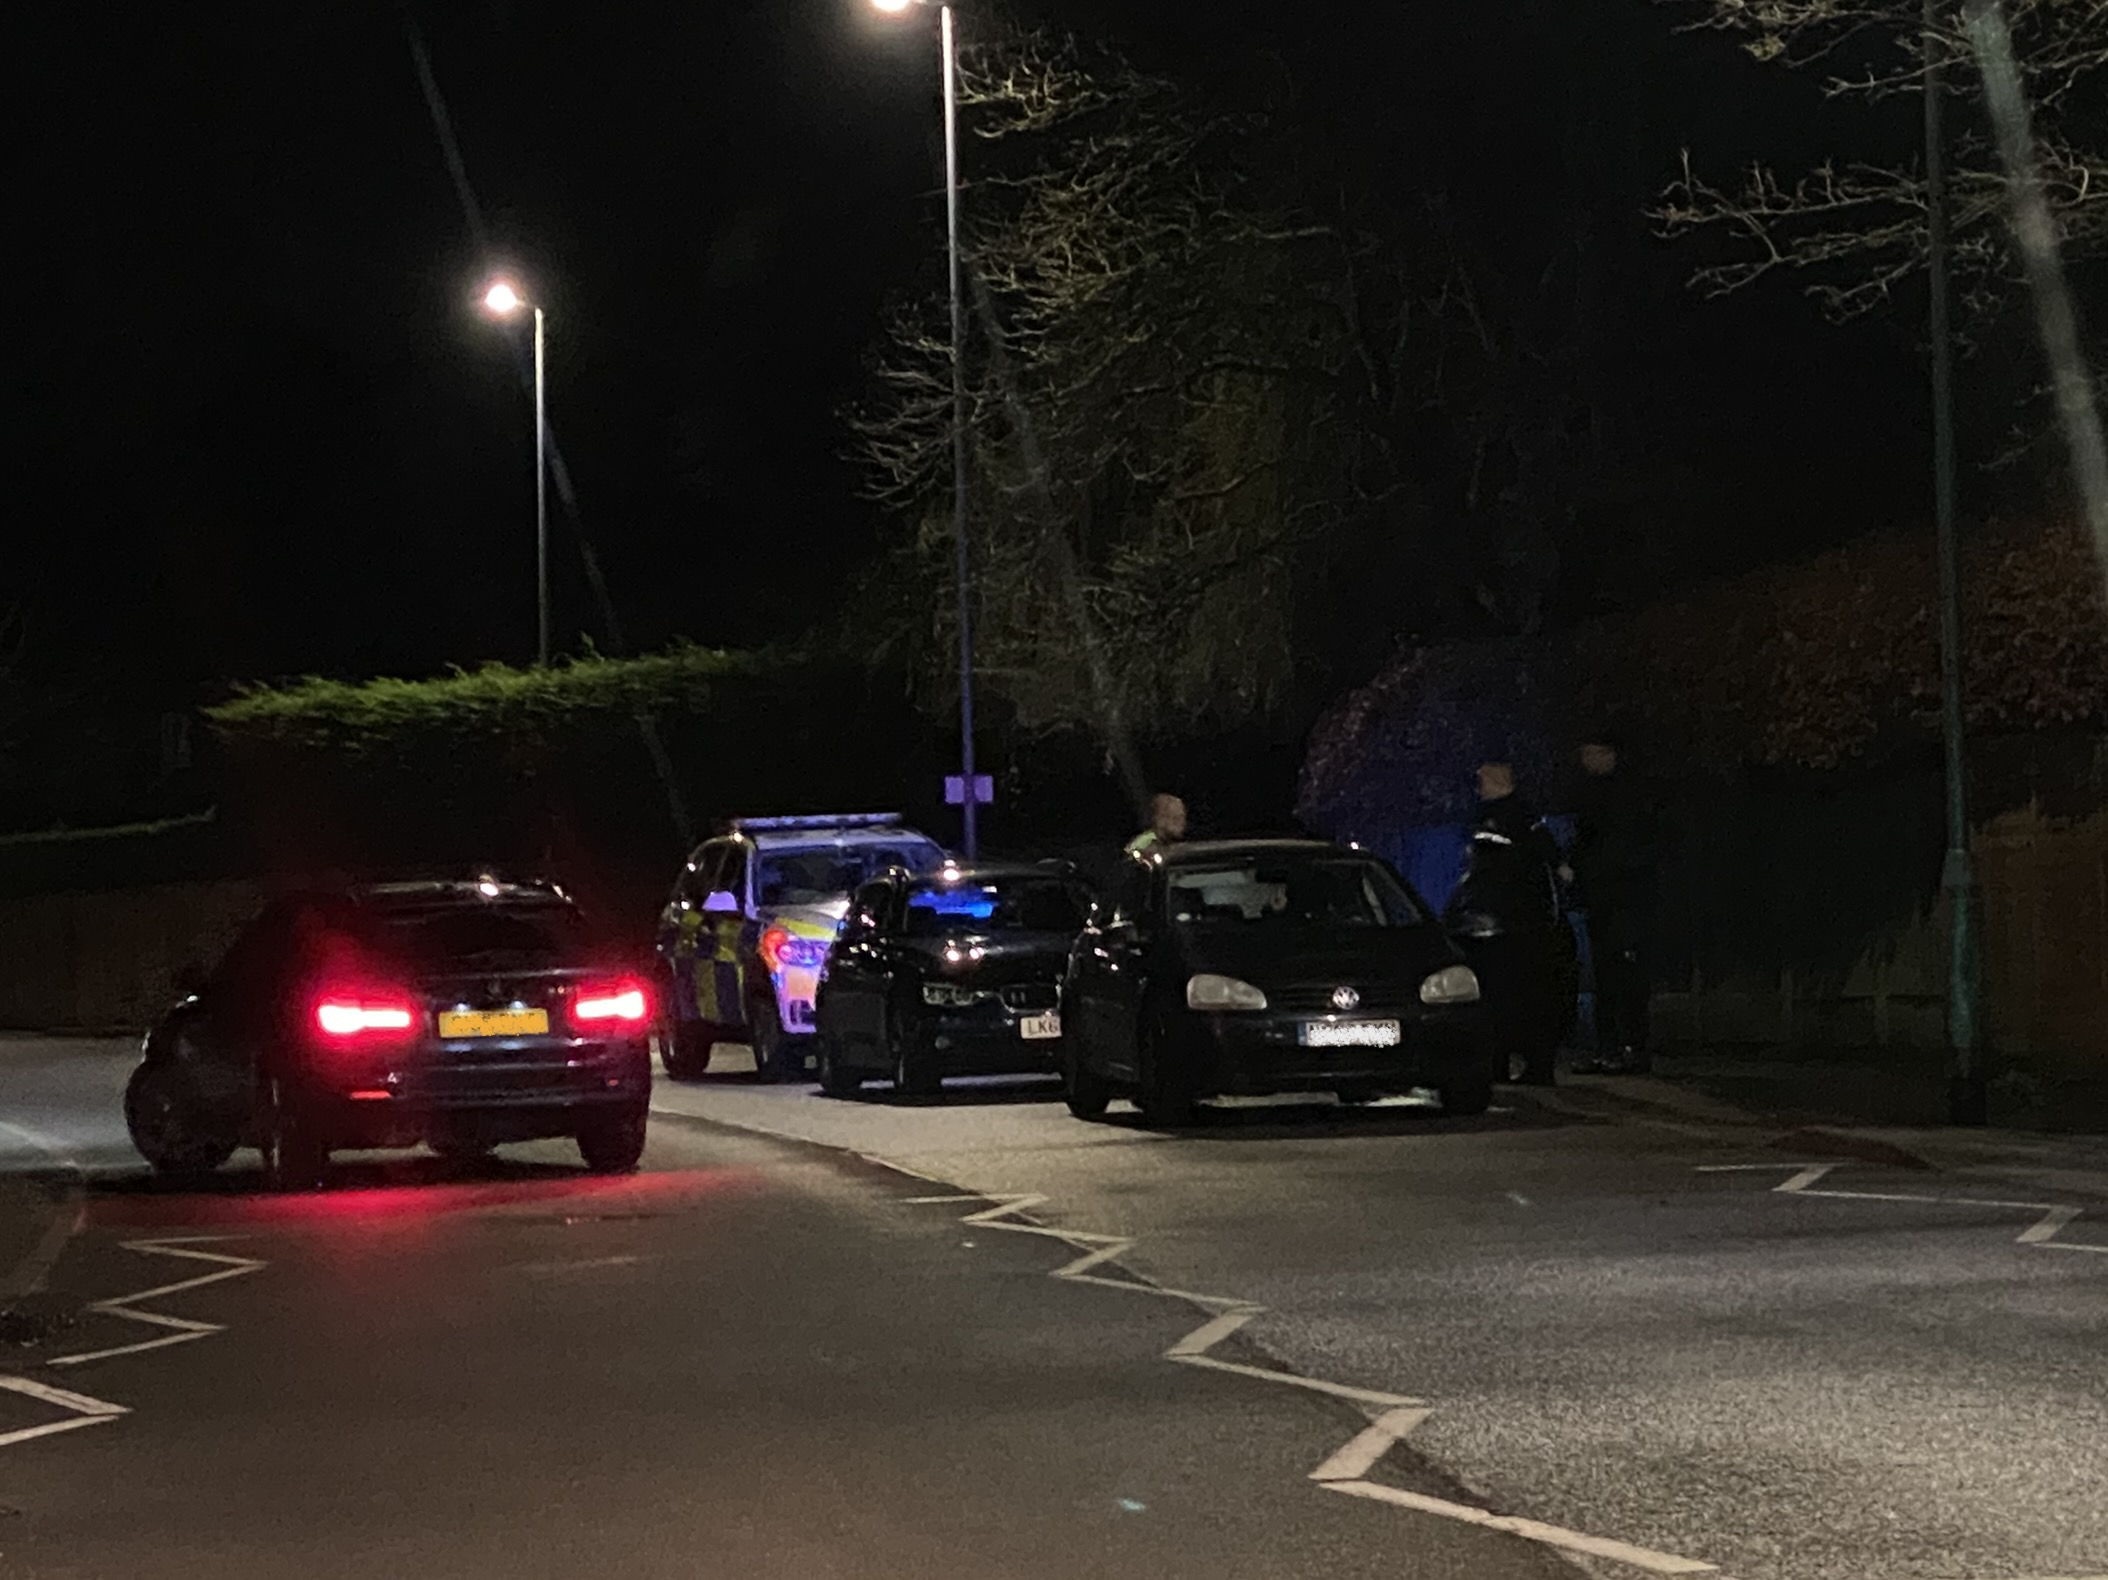 Police hunt ongoing following helicopter search in Wilmslow